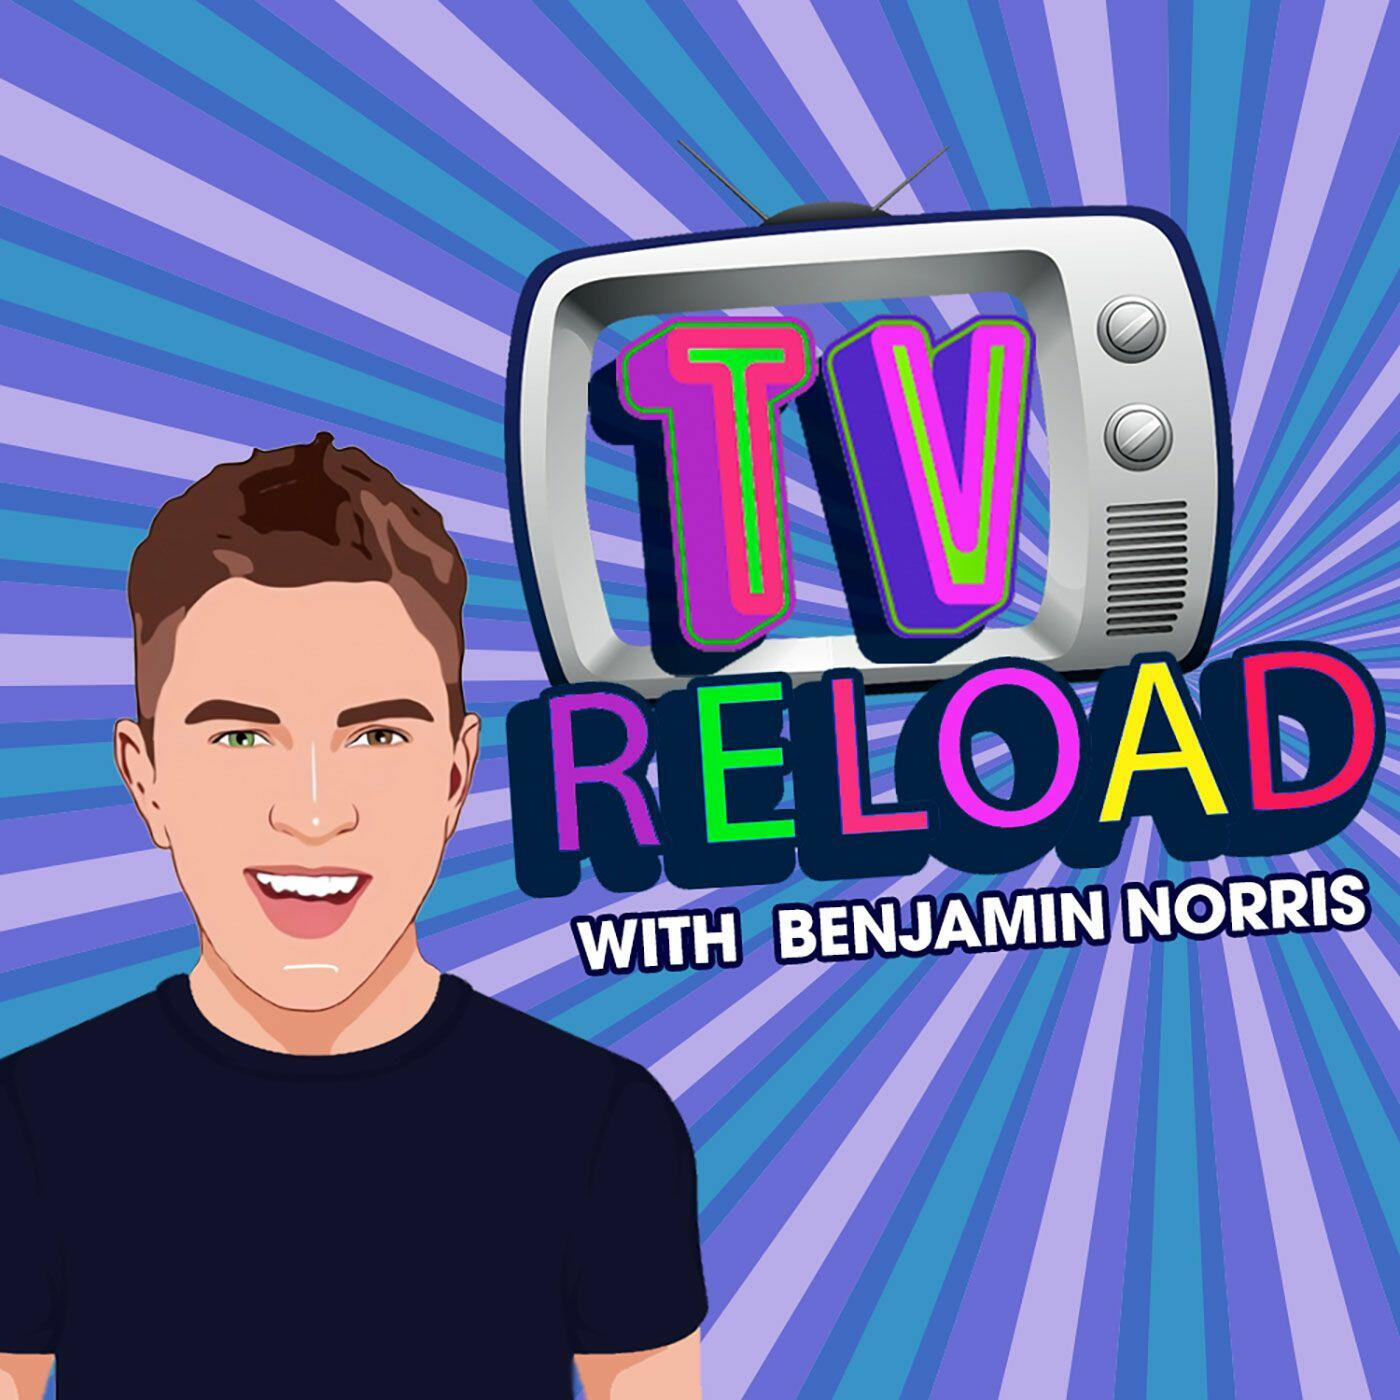 TV RELOAD